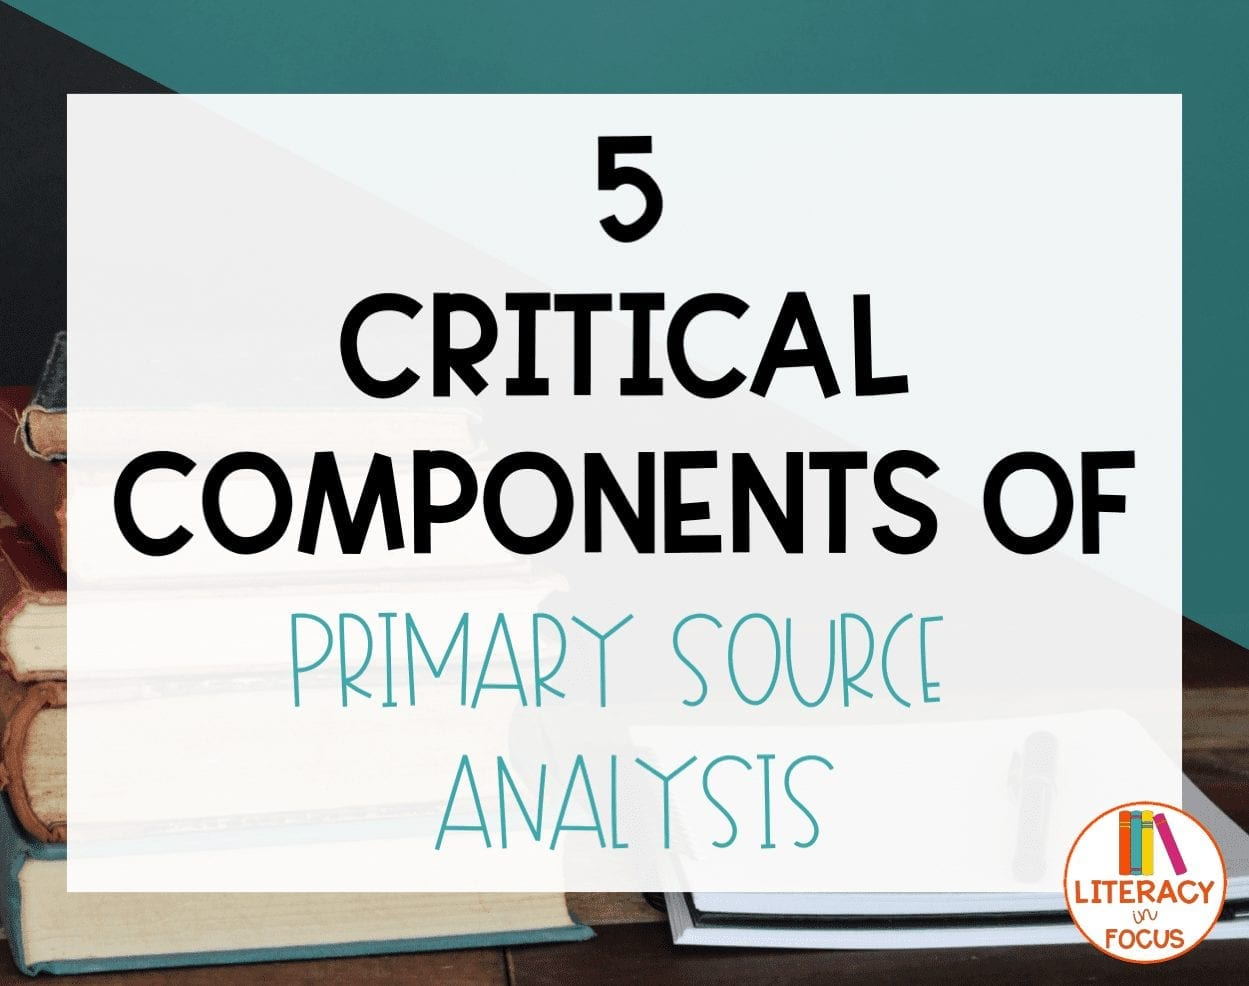 5 Critical Components of Primary Source Analysis